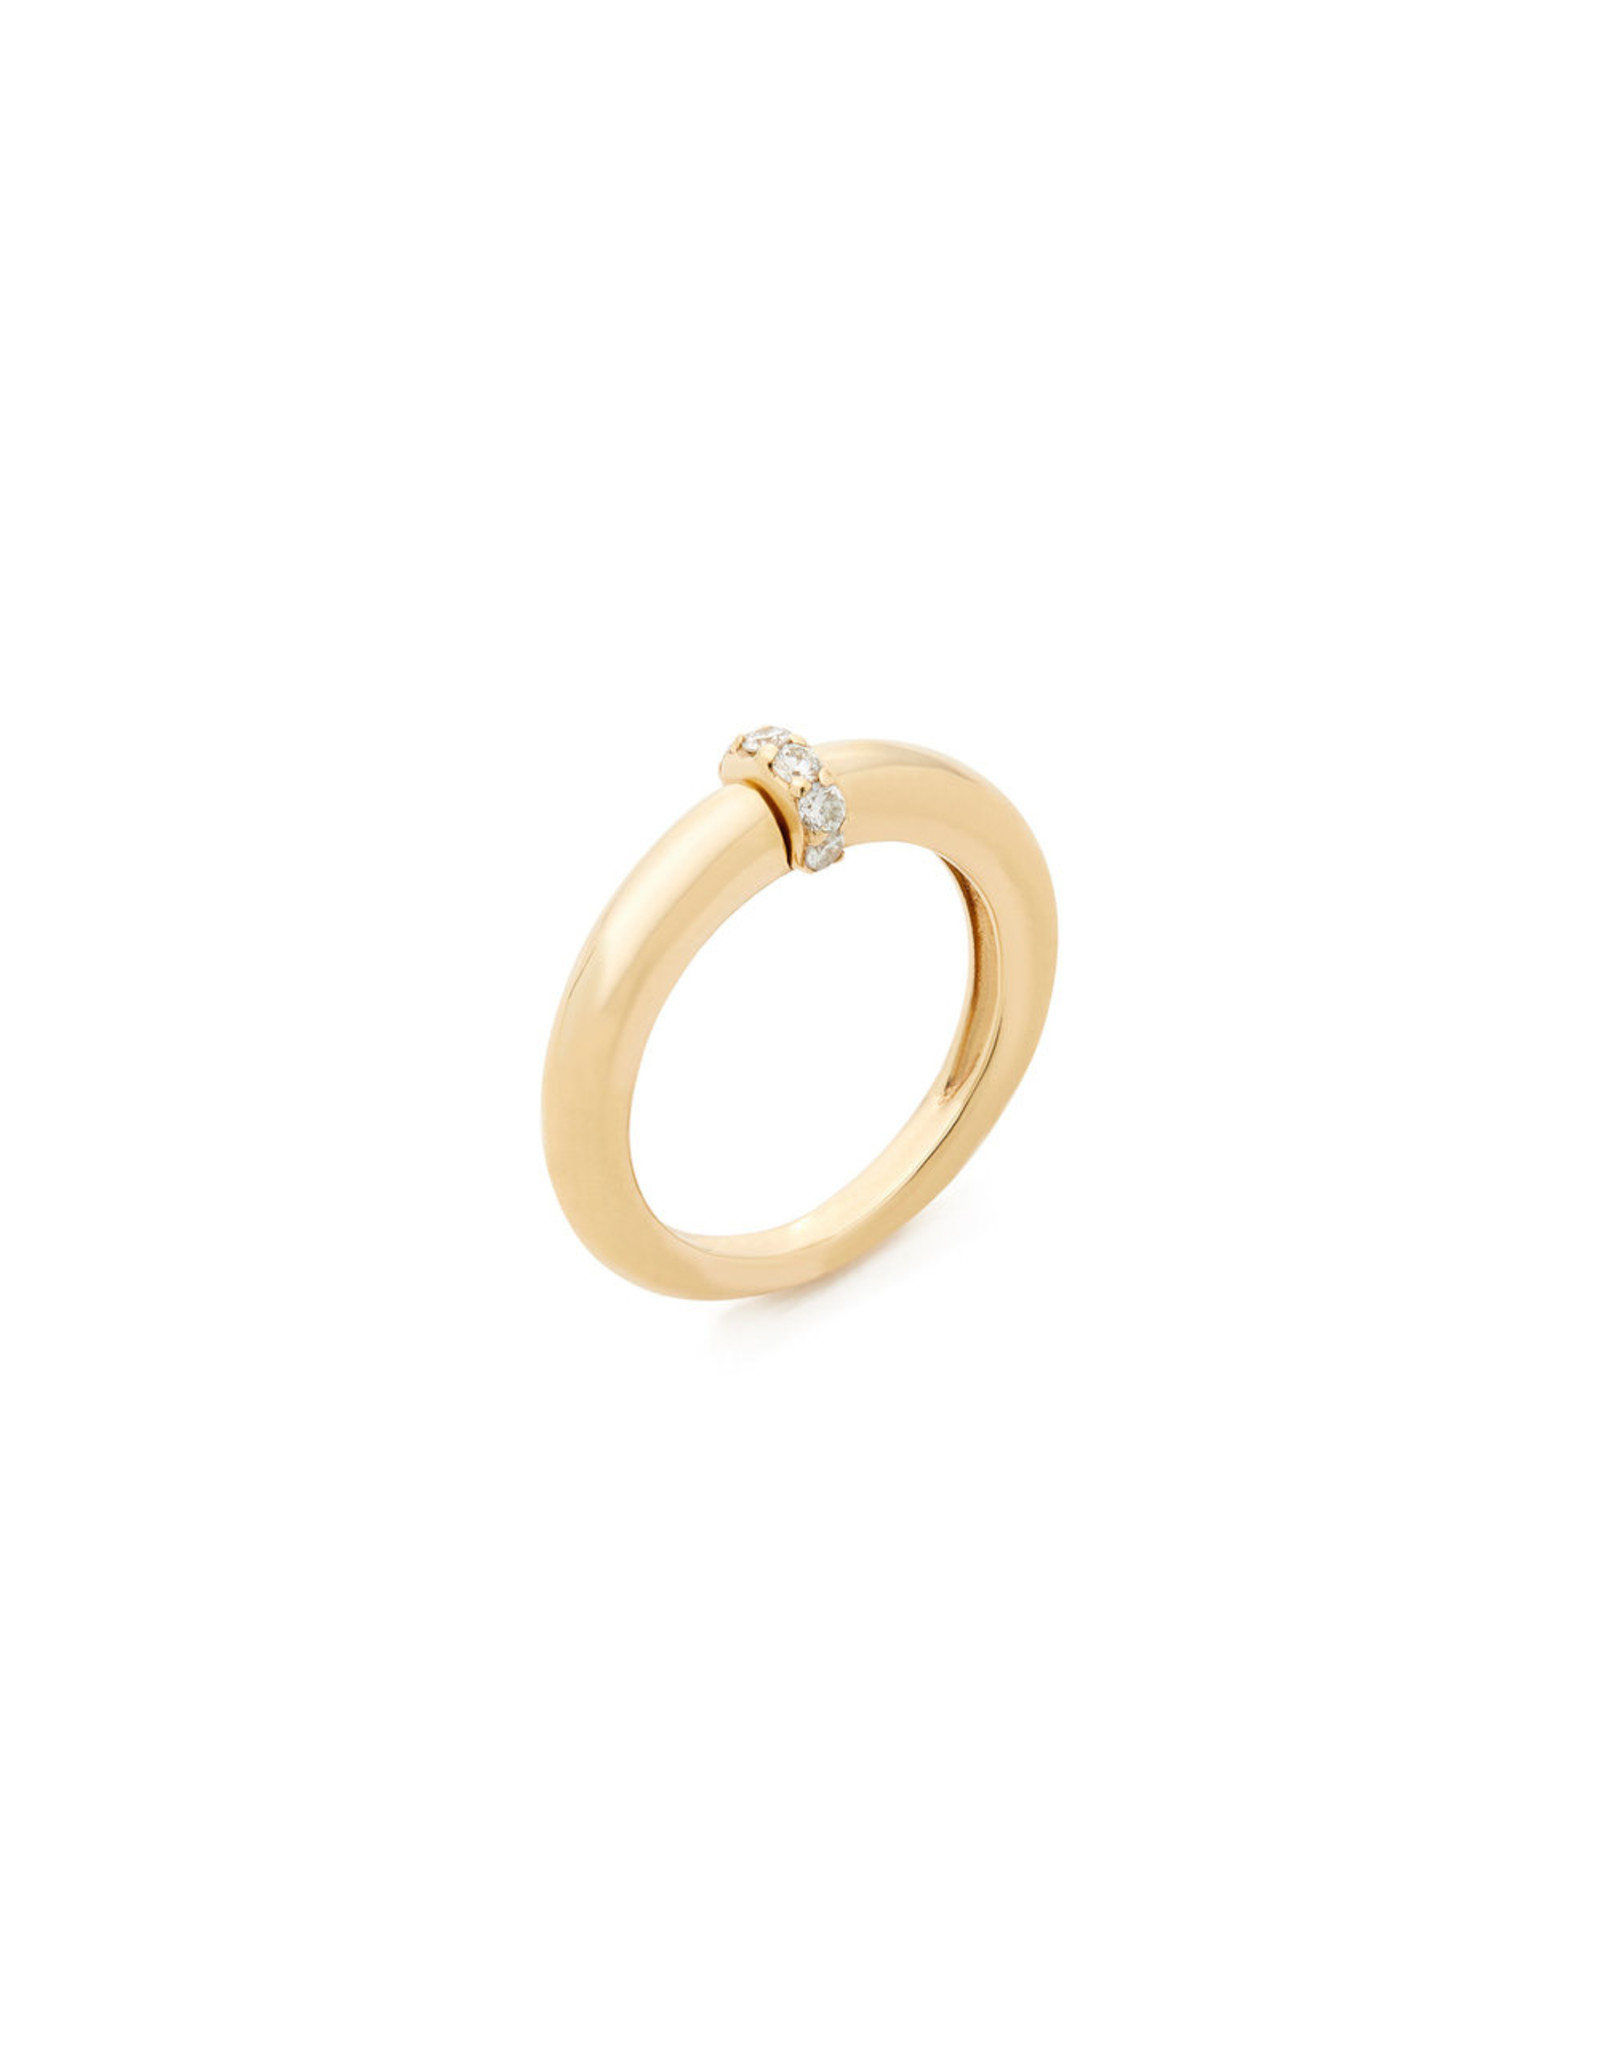 Sophie Ratner Single Diamond Domed Ring (Color: Yellow Gold / Pave, Size: 6)